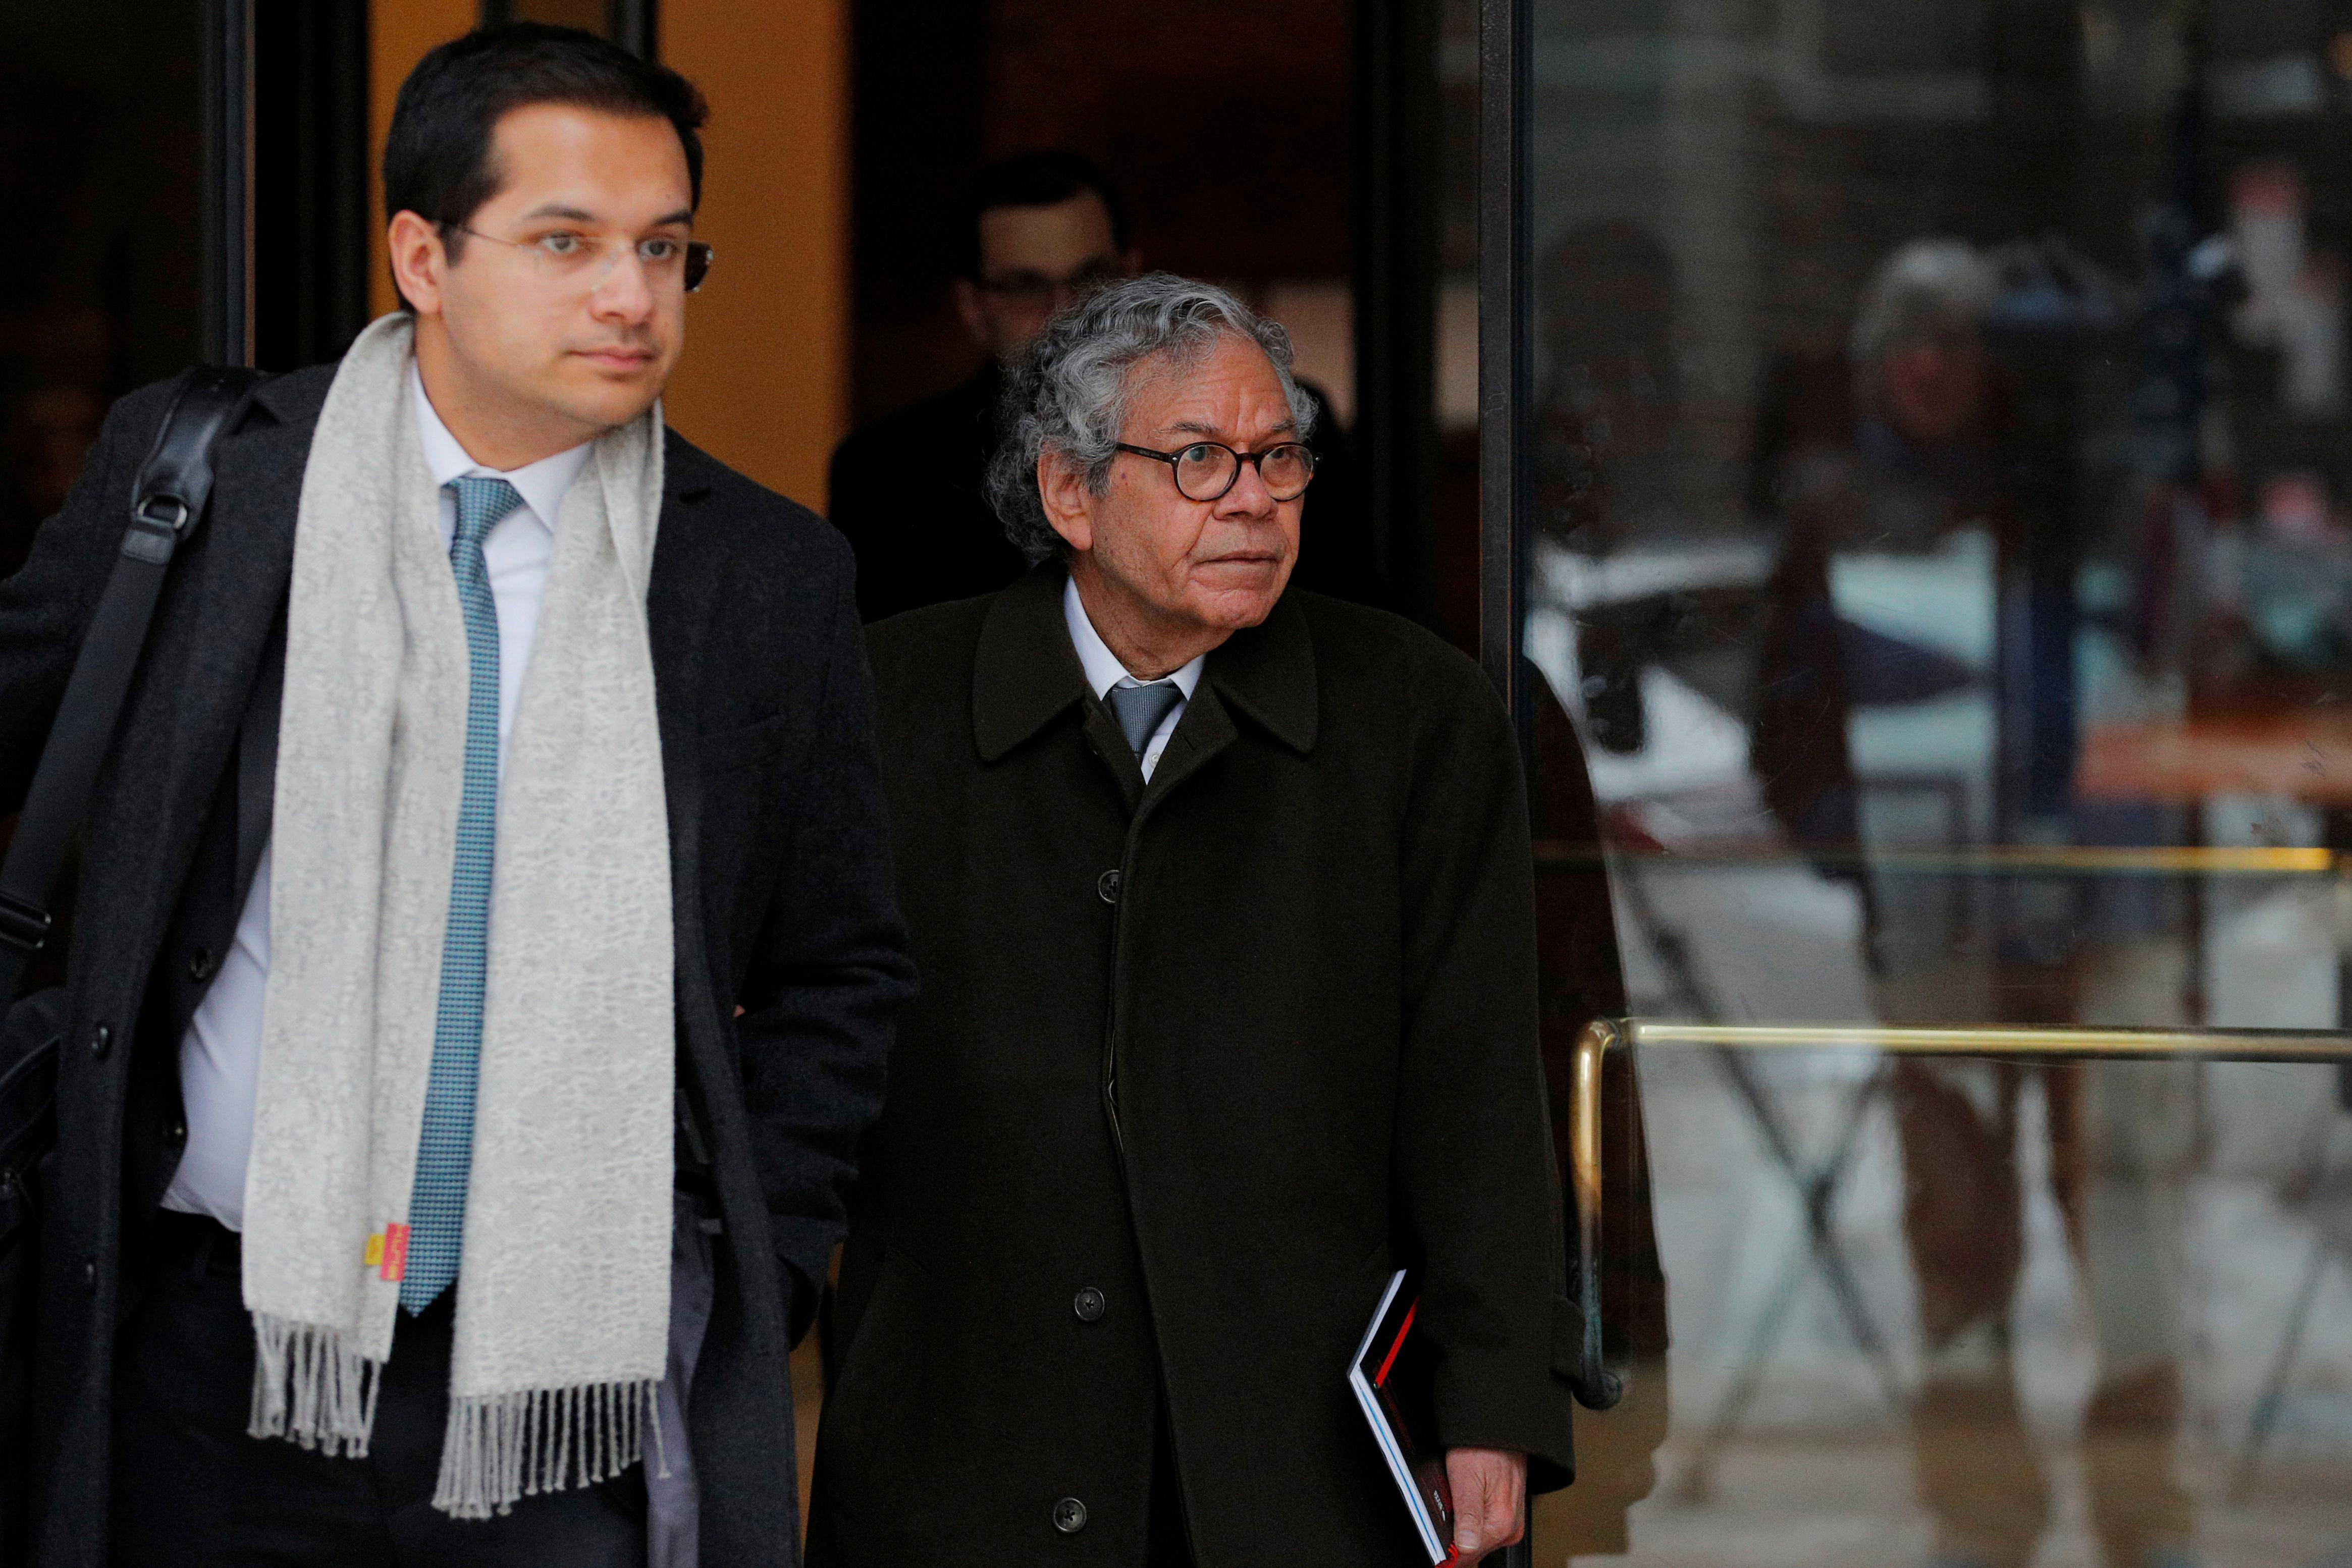 Founder, execs of drug company guilty in conspiracy that fed opioid...